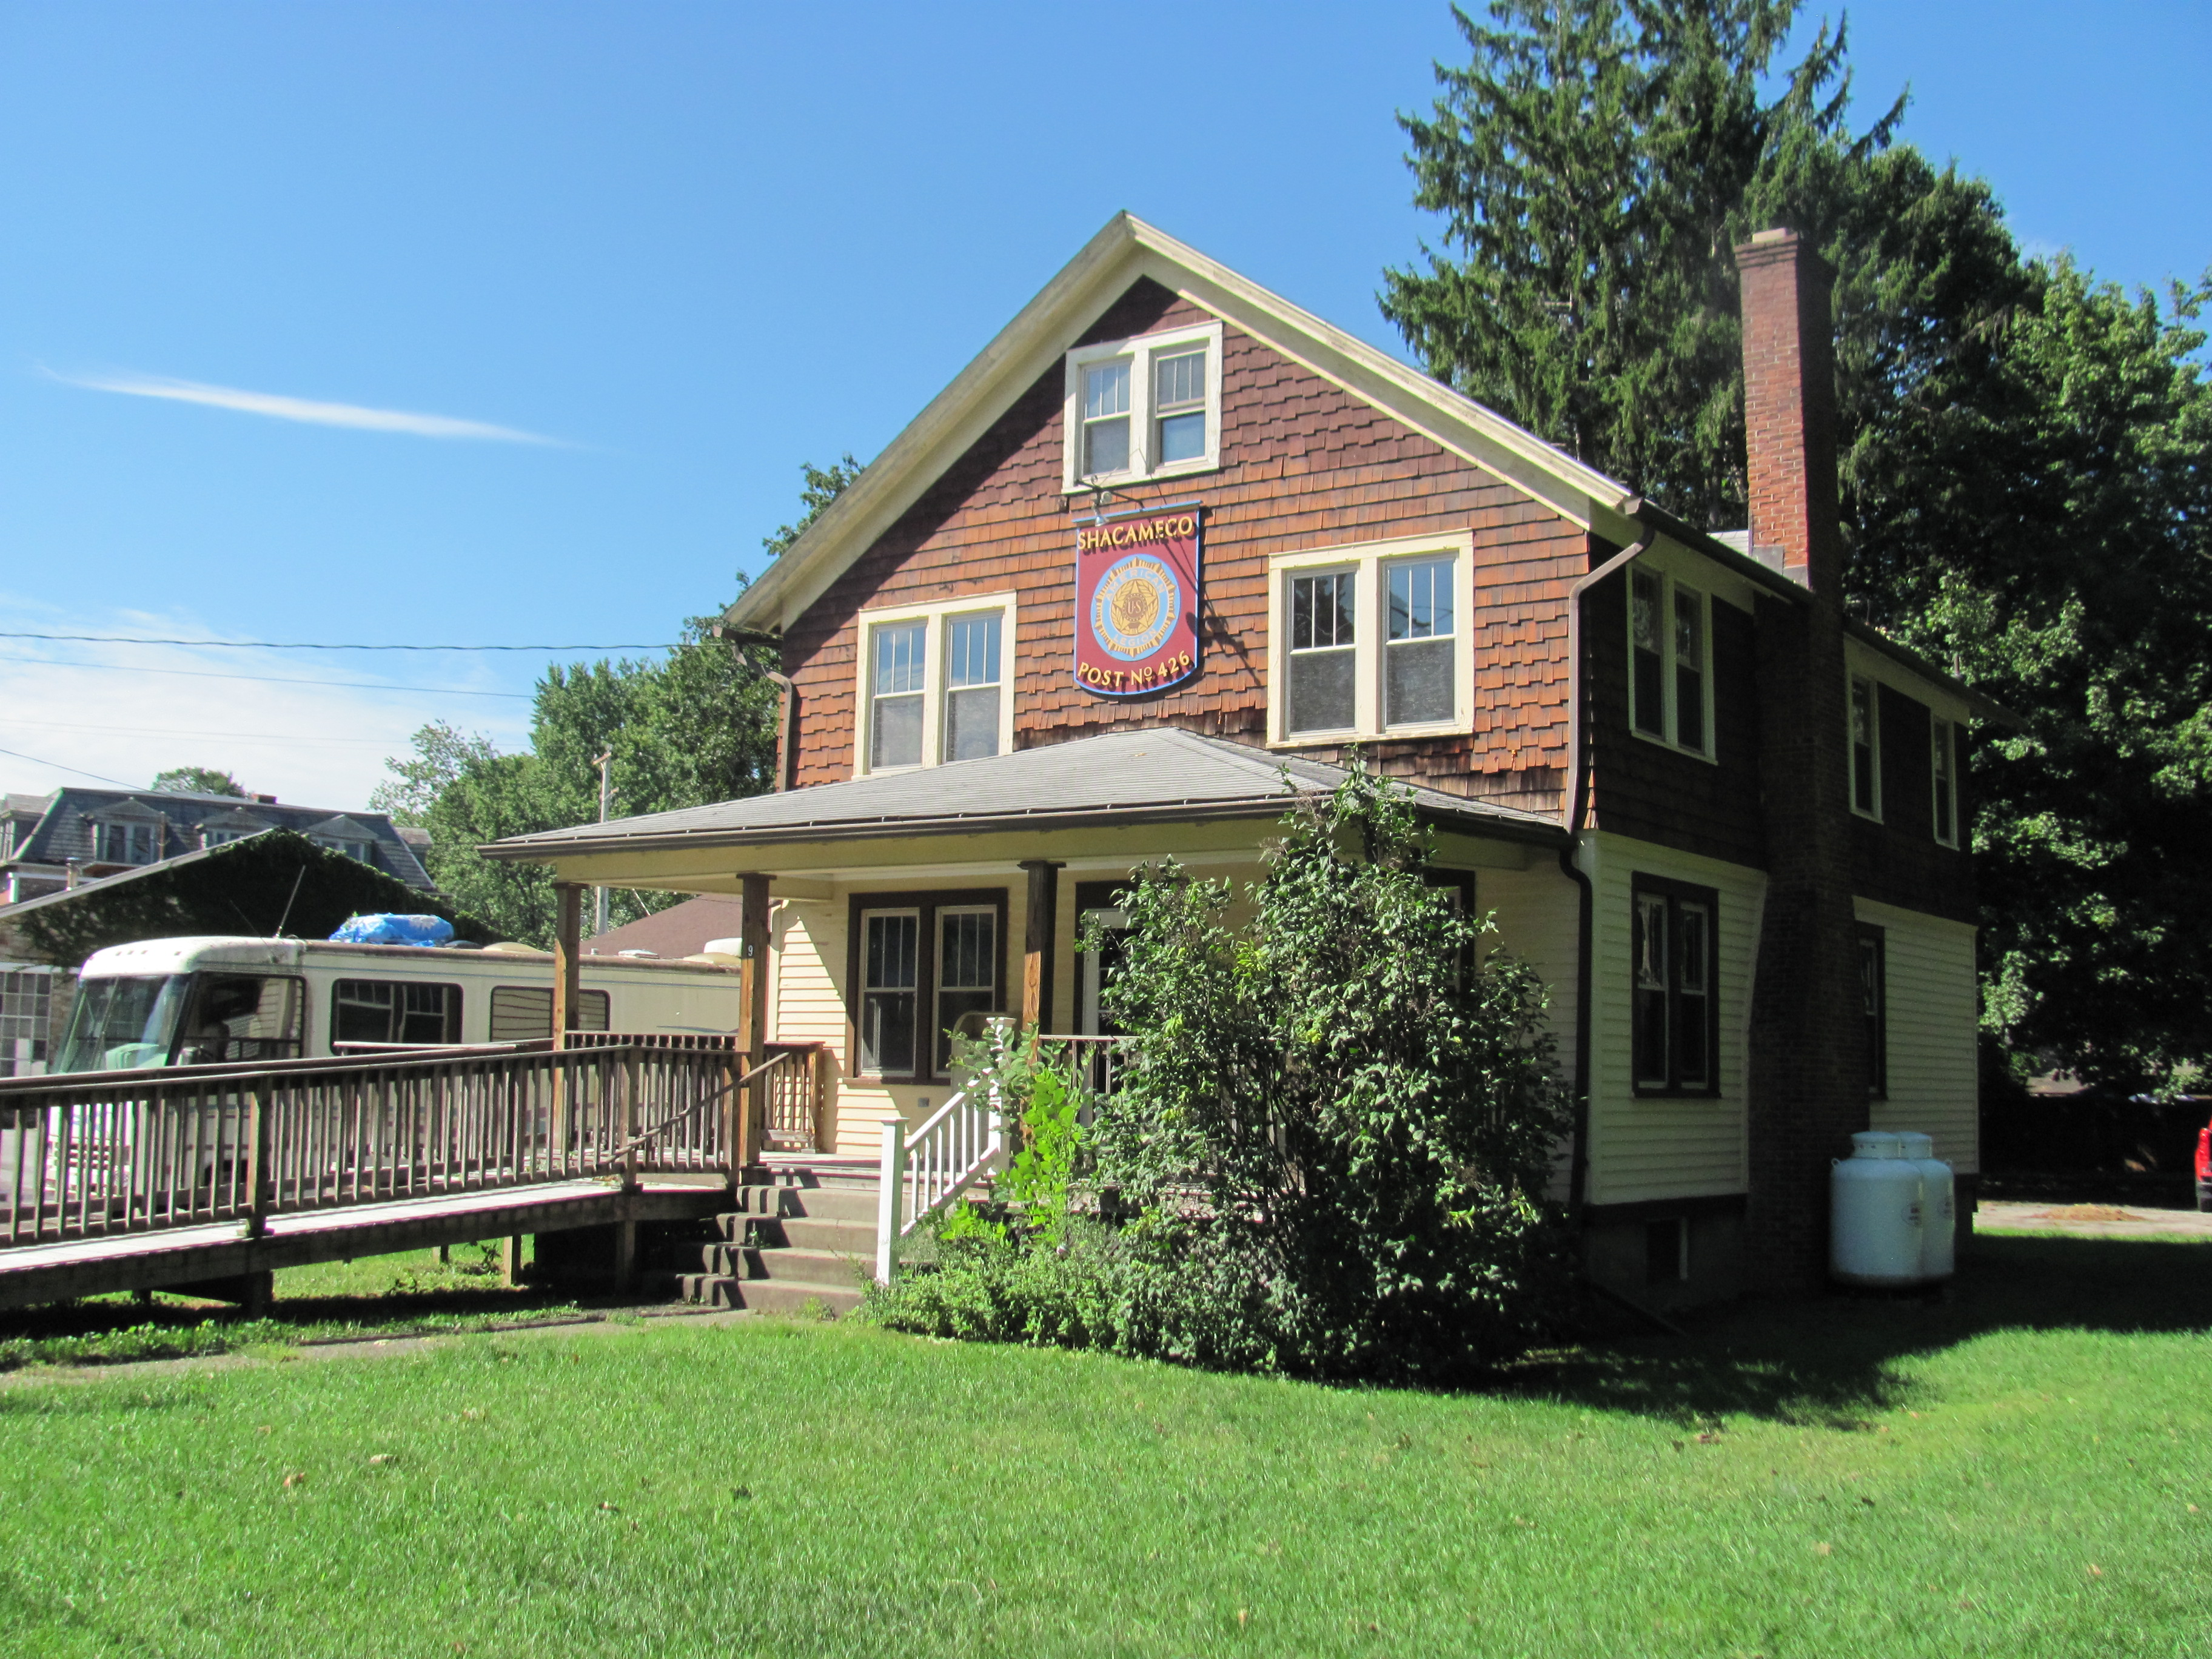 The American Legion Post 426 in Pine Plains